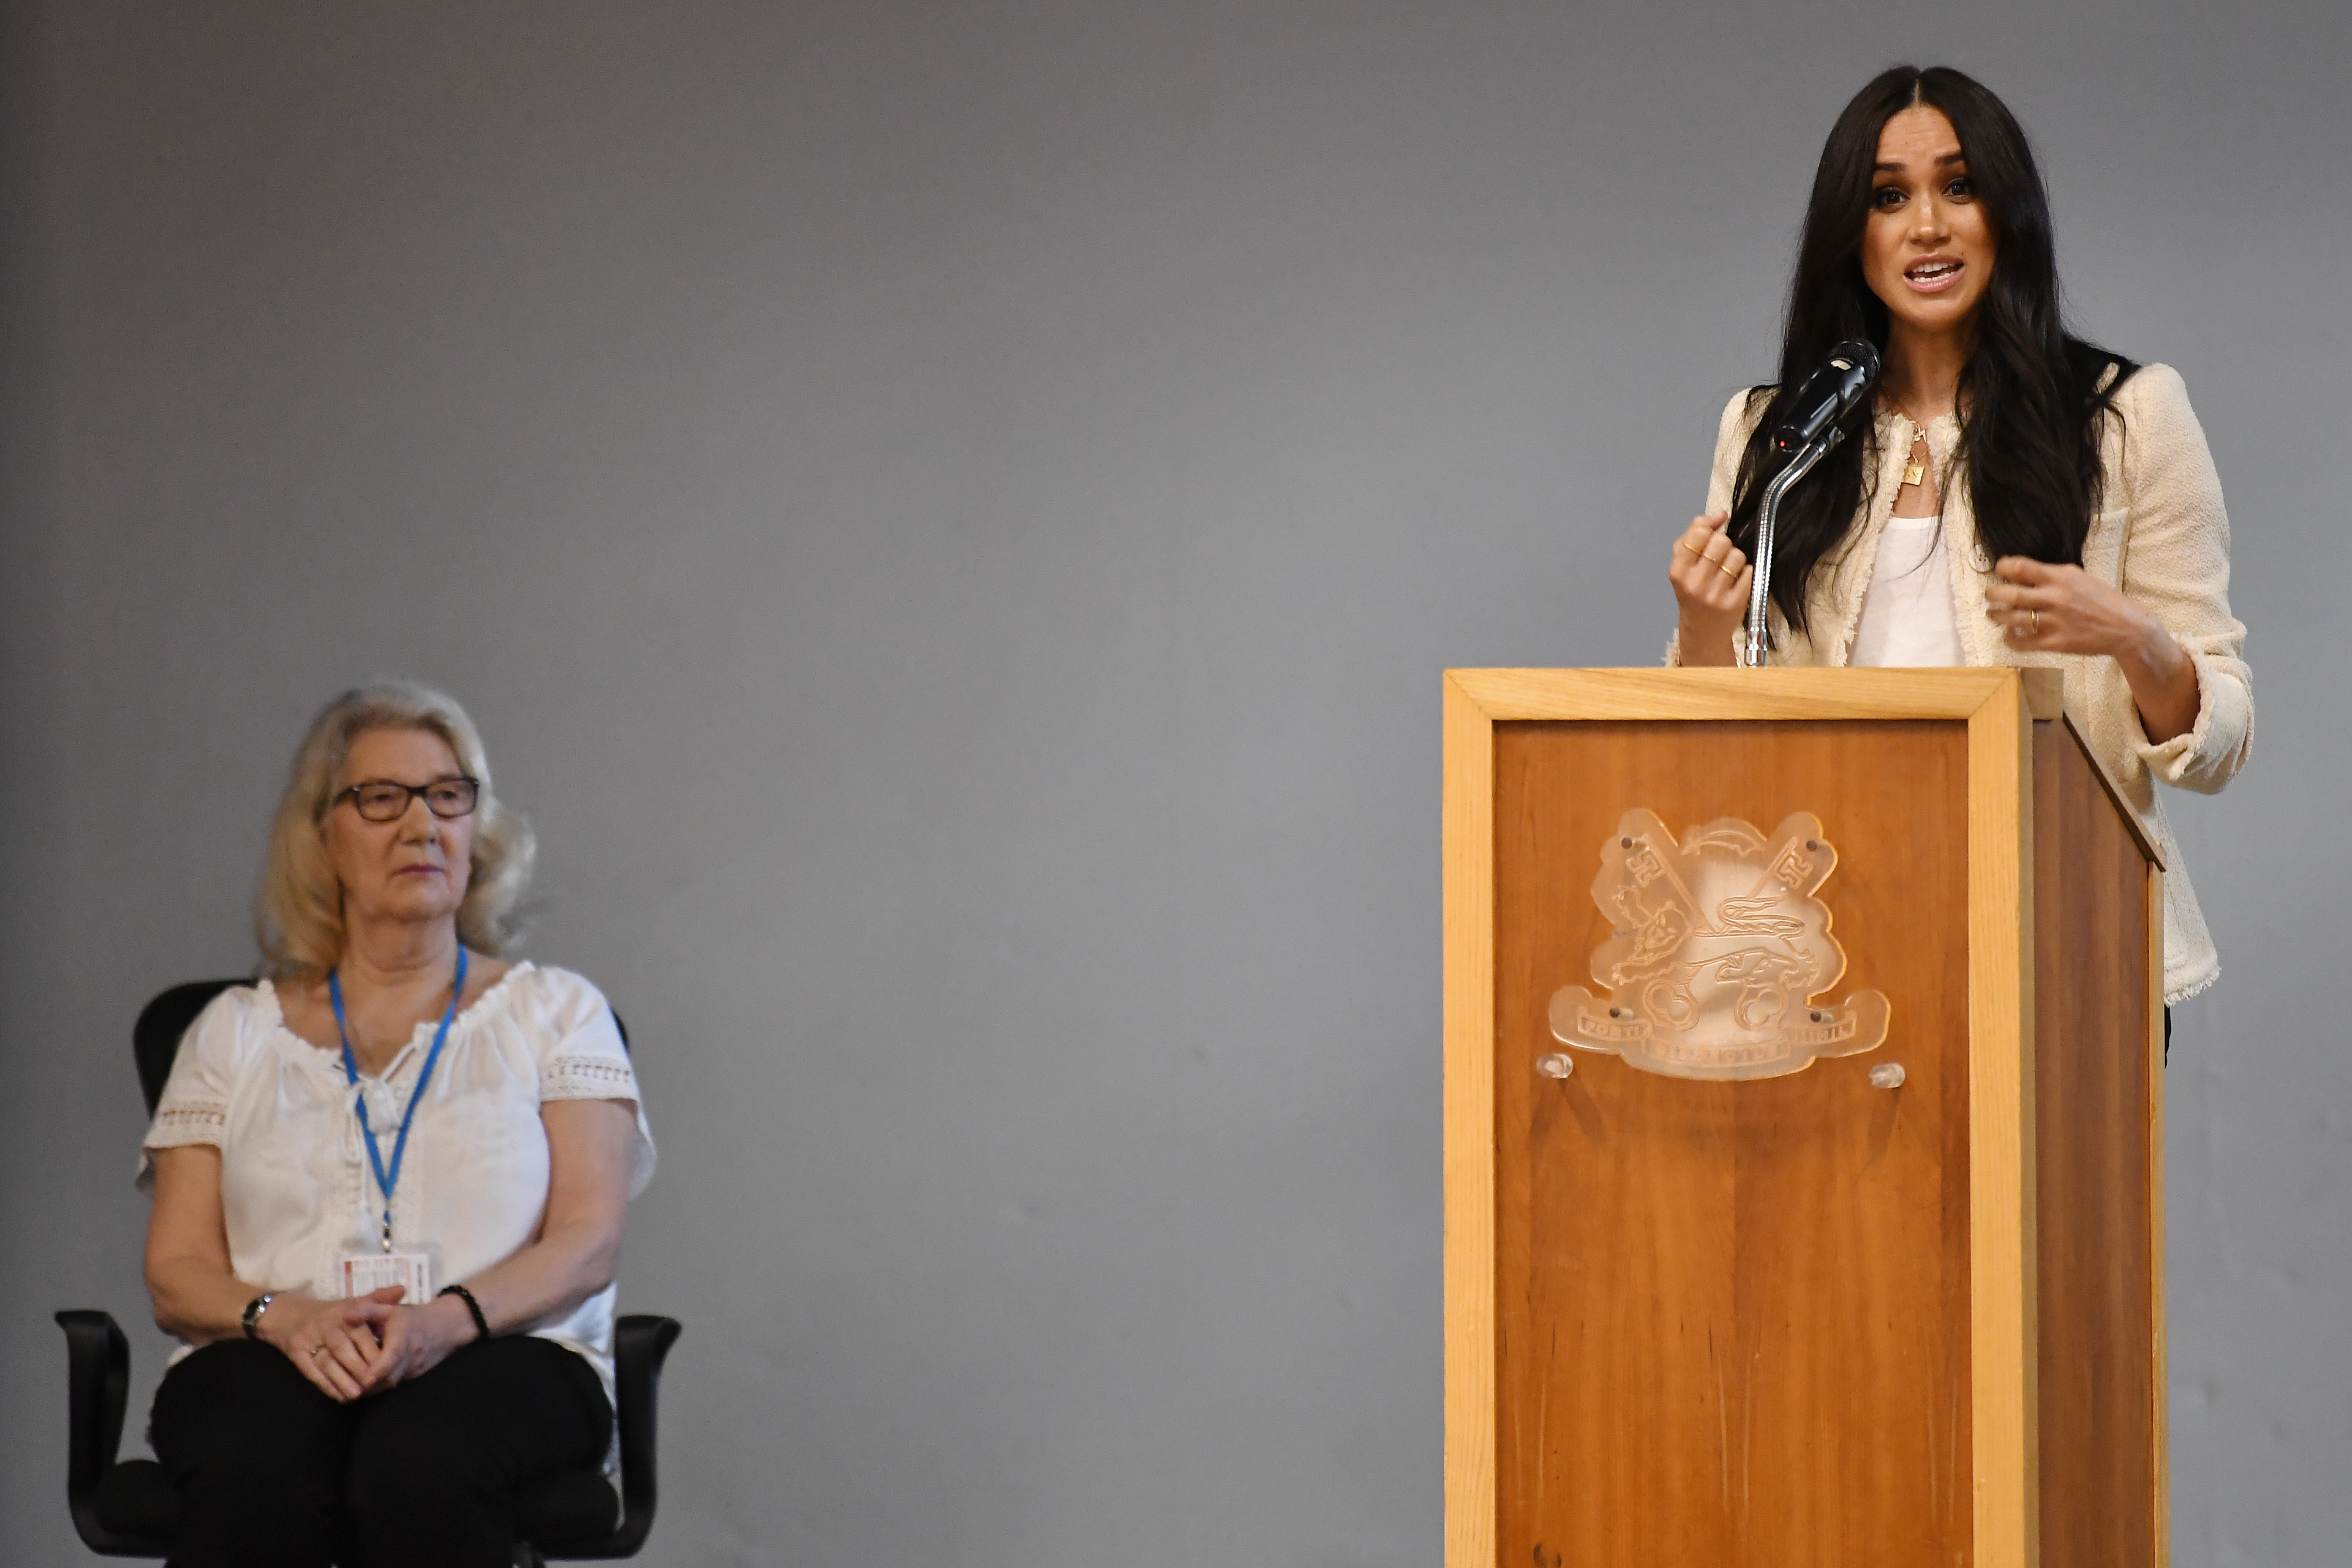 The Duchess of Sussex speaks during a school assembly as part of a surprise visit to the Robert Clack Upper School in Dagenham, Essex, to celebrate International Women's Day.